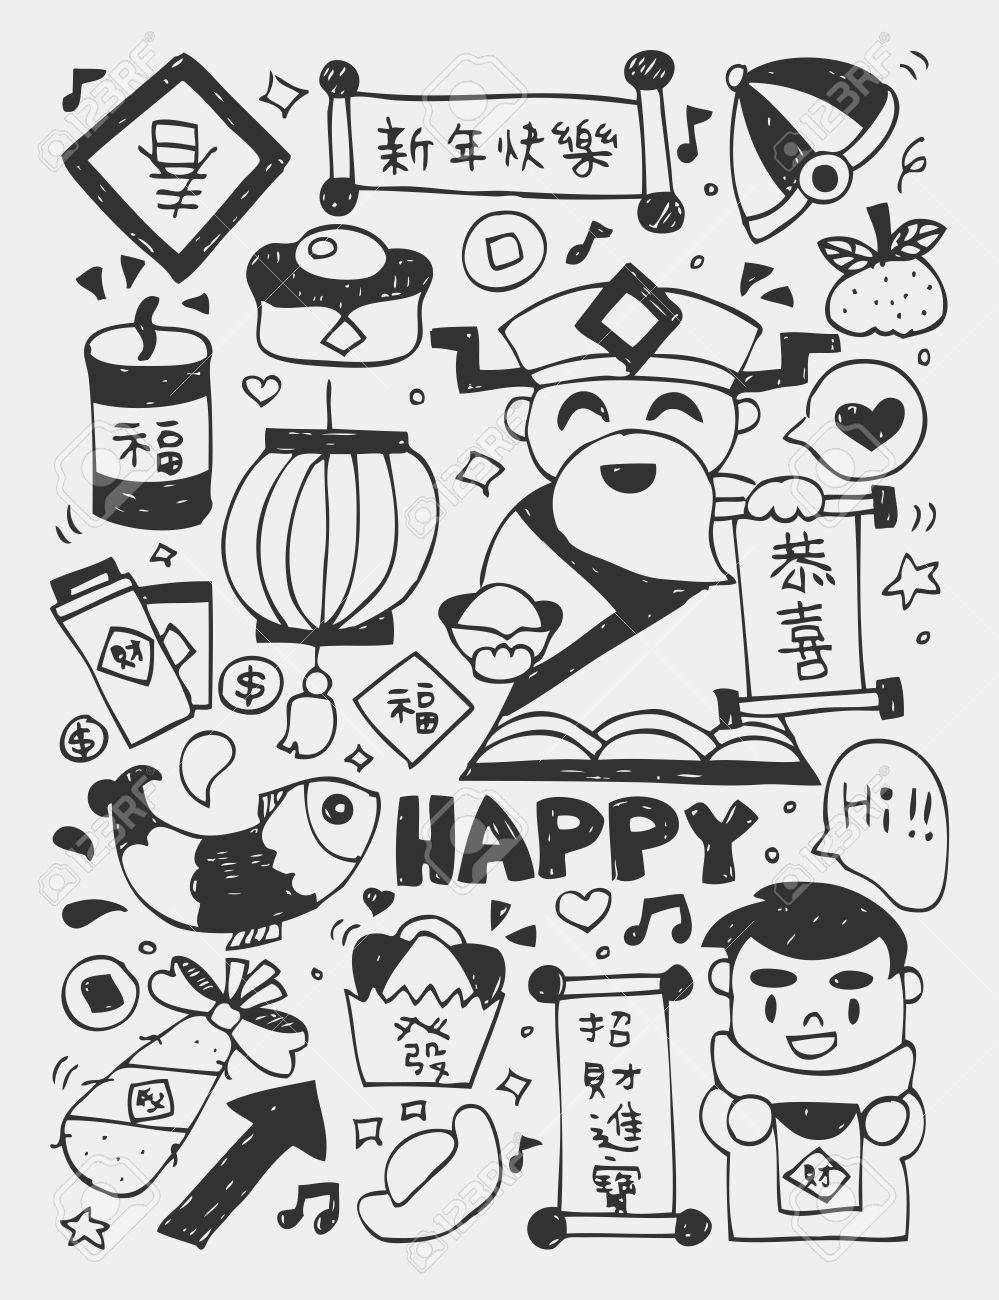 Chinese New Year Elements Doodles Hand Drawn Line Iconeps10 Stock Vector